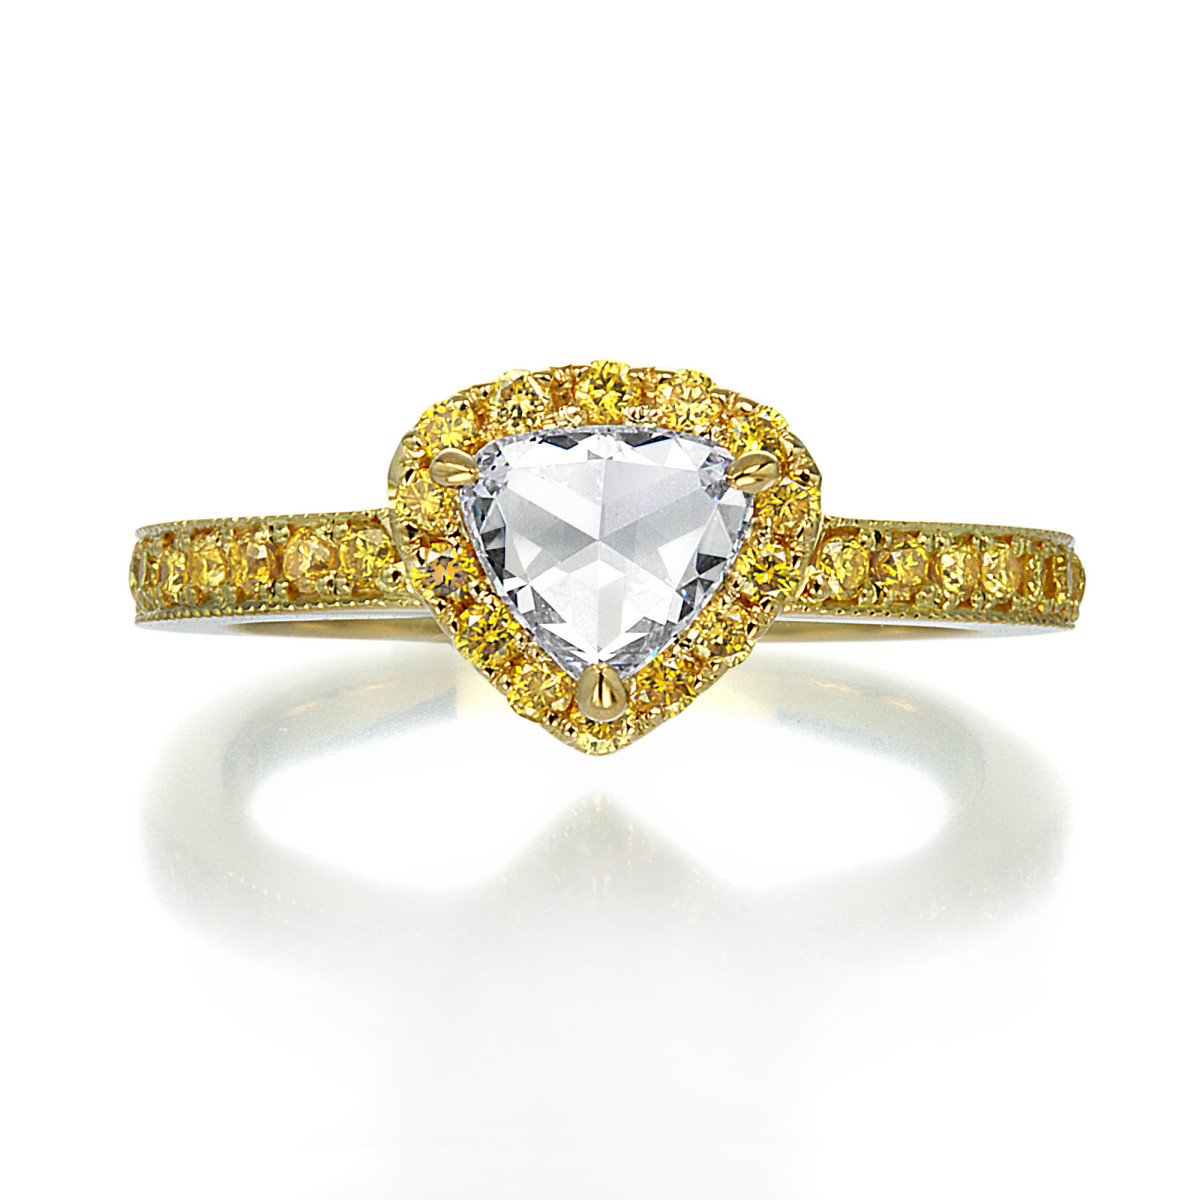 K18 YG Rose Cut and Fancy Yellow Diamond Ring By Mark Hiroshi Willis